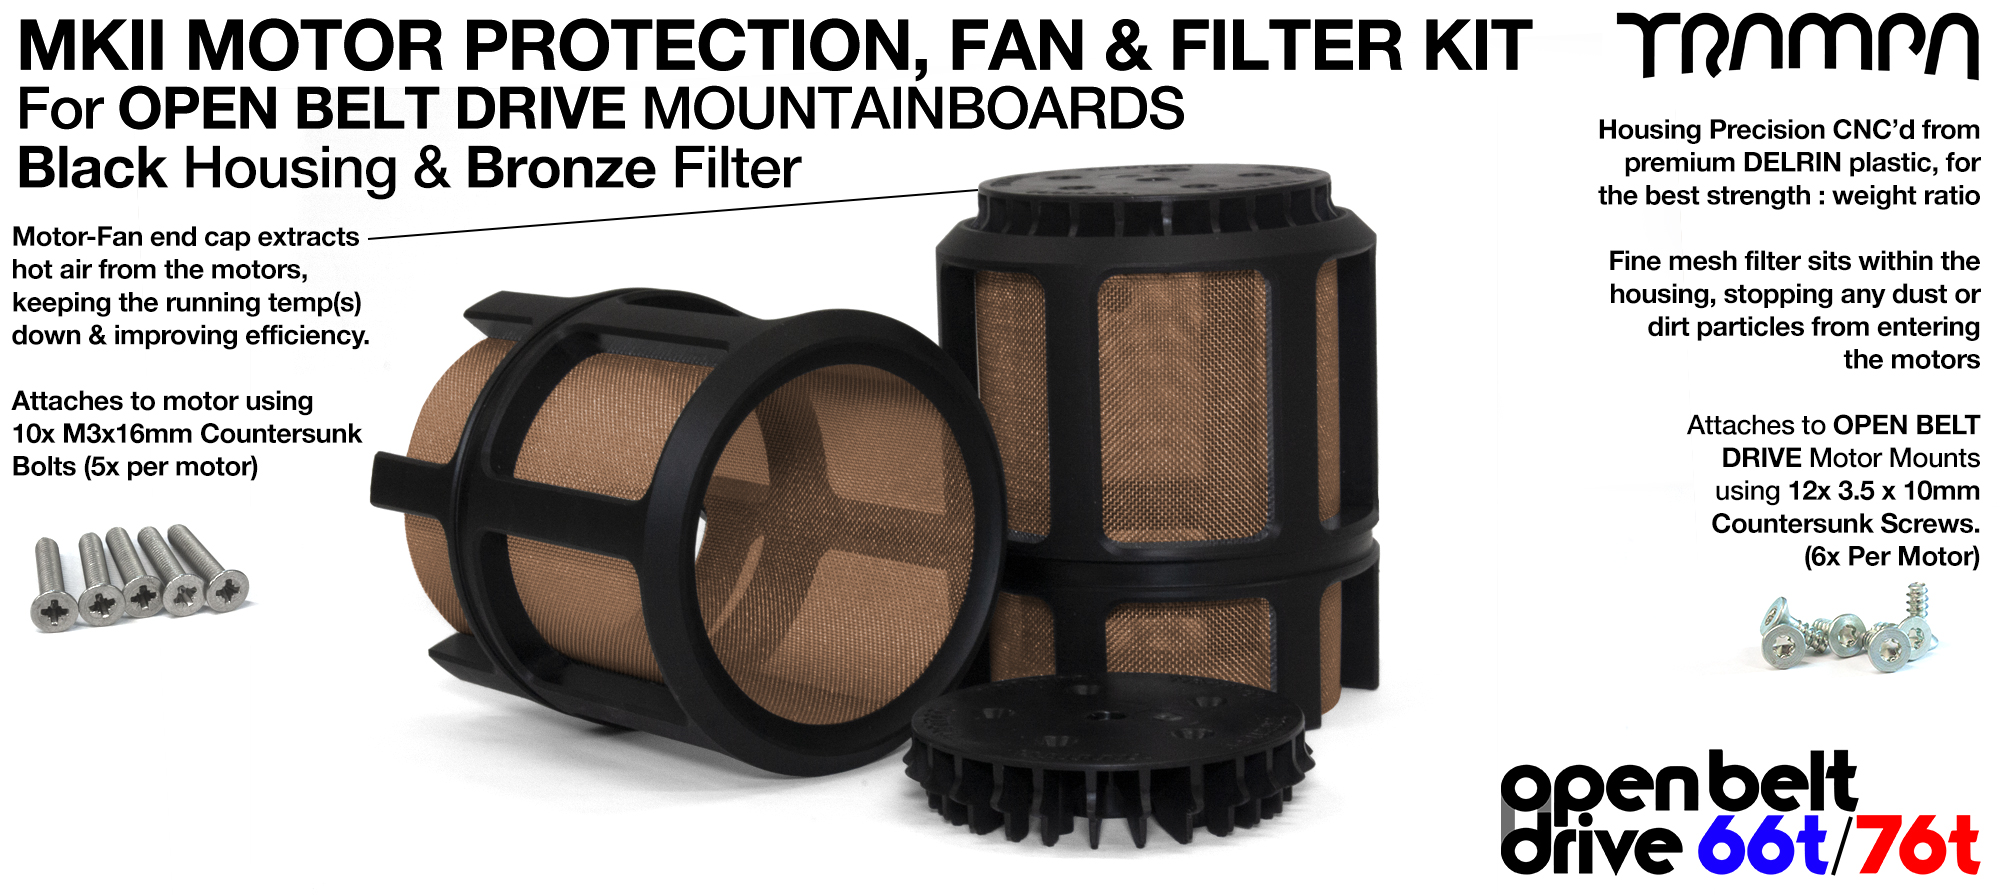 BRONZE Mesh Filter in Motor Protection Cage with Fan (+£60)